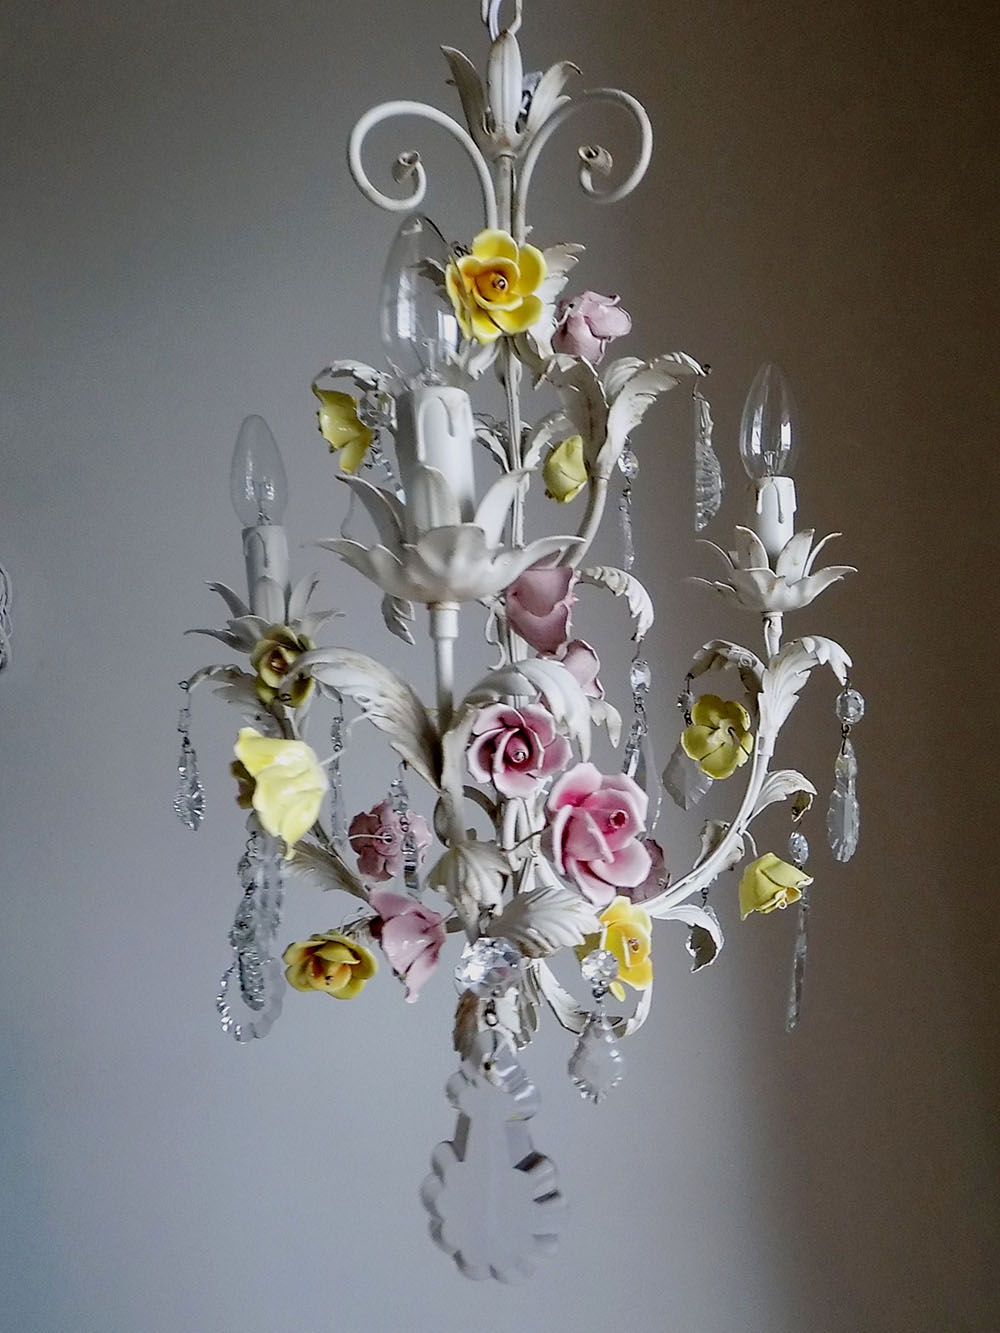 ITALIAN VINTAGE TOLE CHANDELIER WITH PORCELAIN FLOWERS - Italian Vintage Chandelier With Porcelain Flowers - Lorella Dia